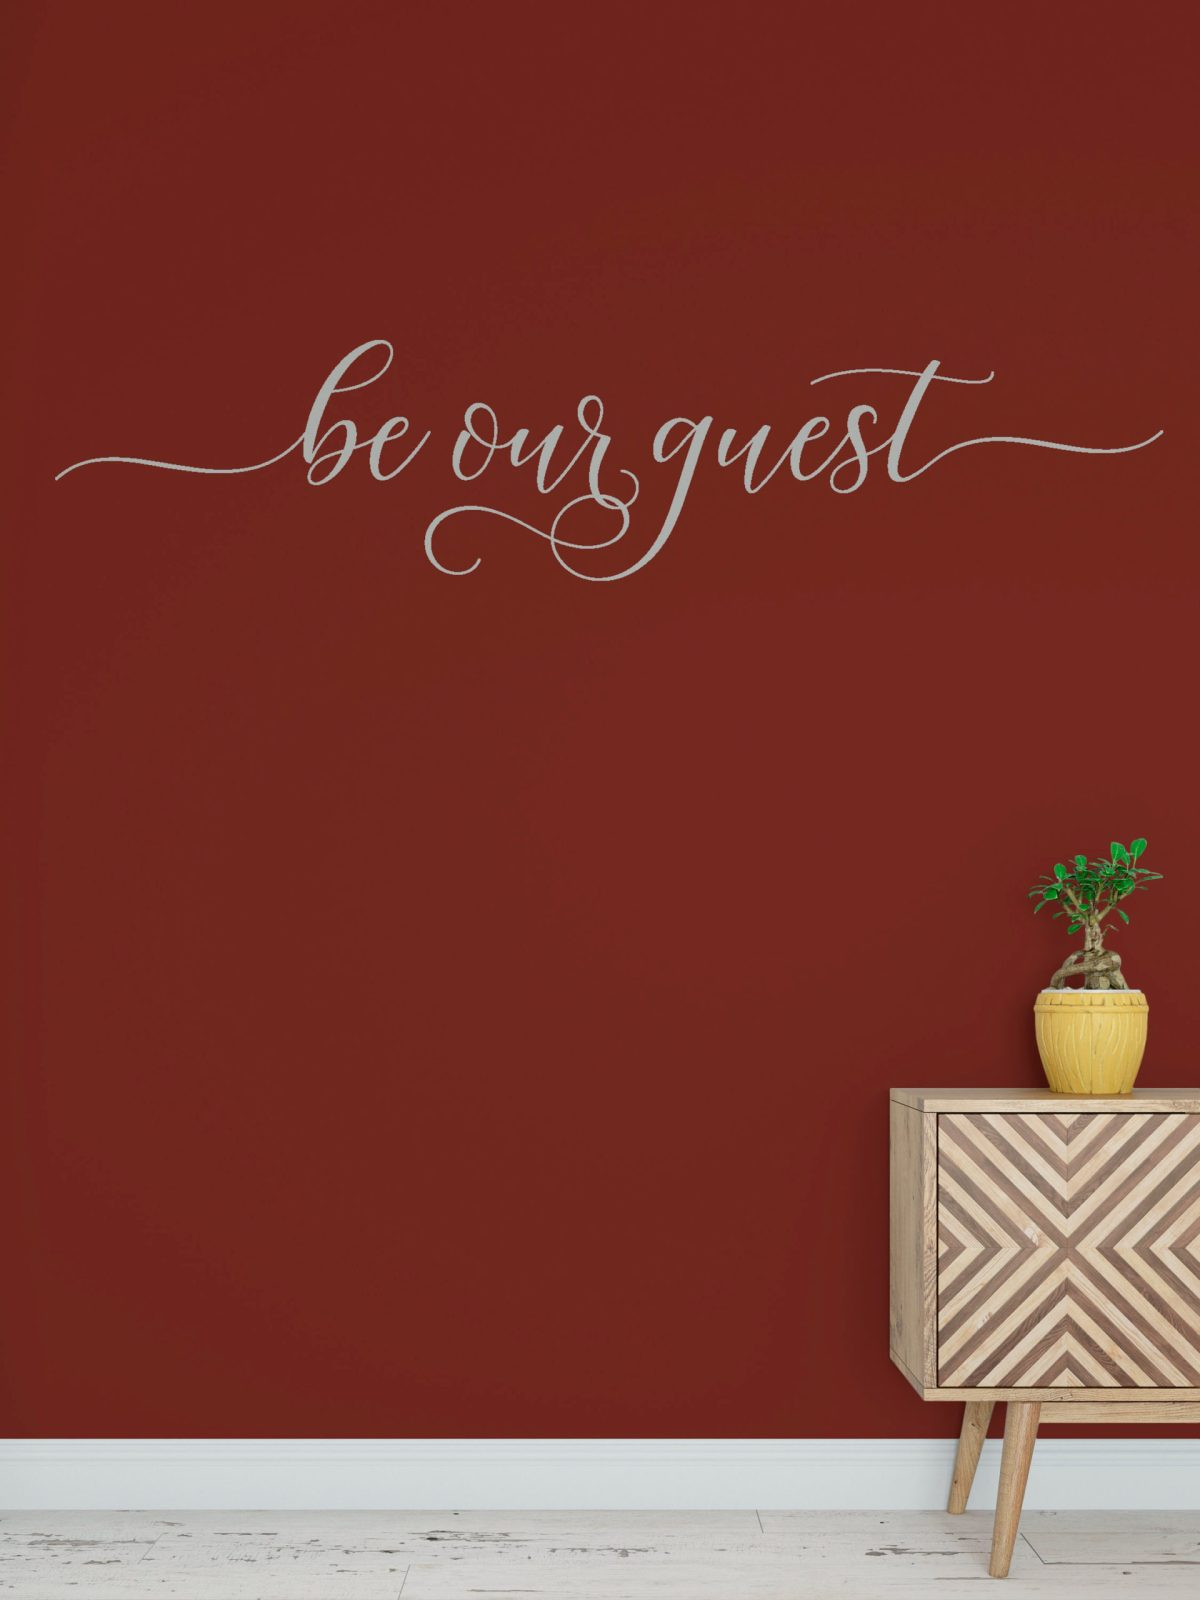 be our guest decal wall words vinyl lettering bedroom